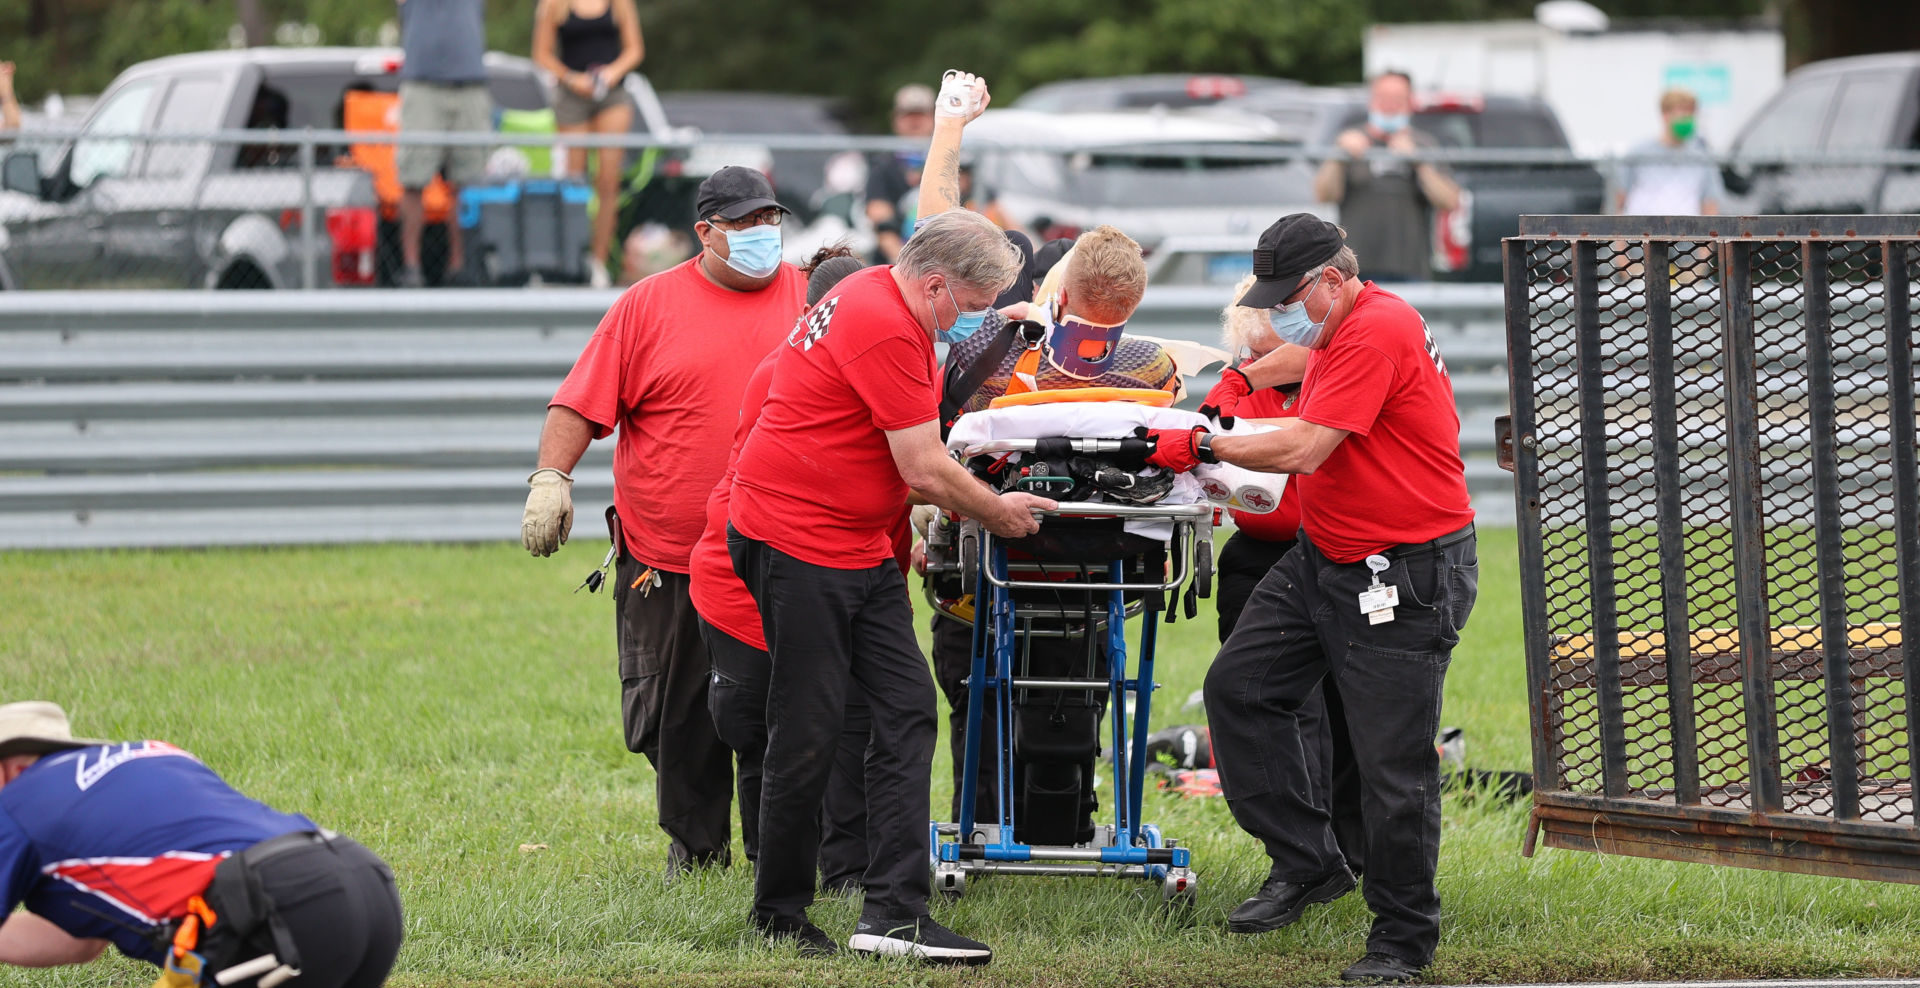 Bradley Ward raises his fist to acknowledge cheering fans as medical workers attend to him after his crash in MotoAmerica Superbike Race Two at New Jersey Motorsports Park. Photo by Brian J. Nelson, courtesy Bradley Ward Racing.